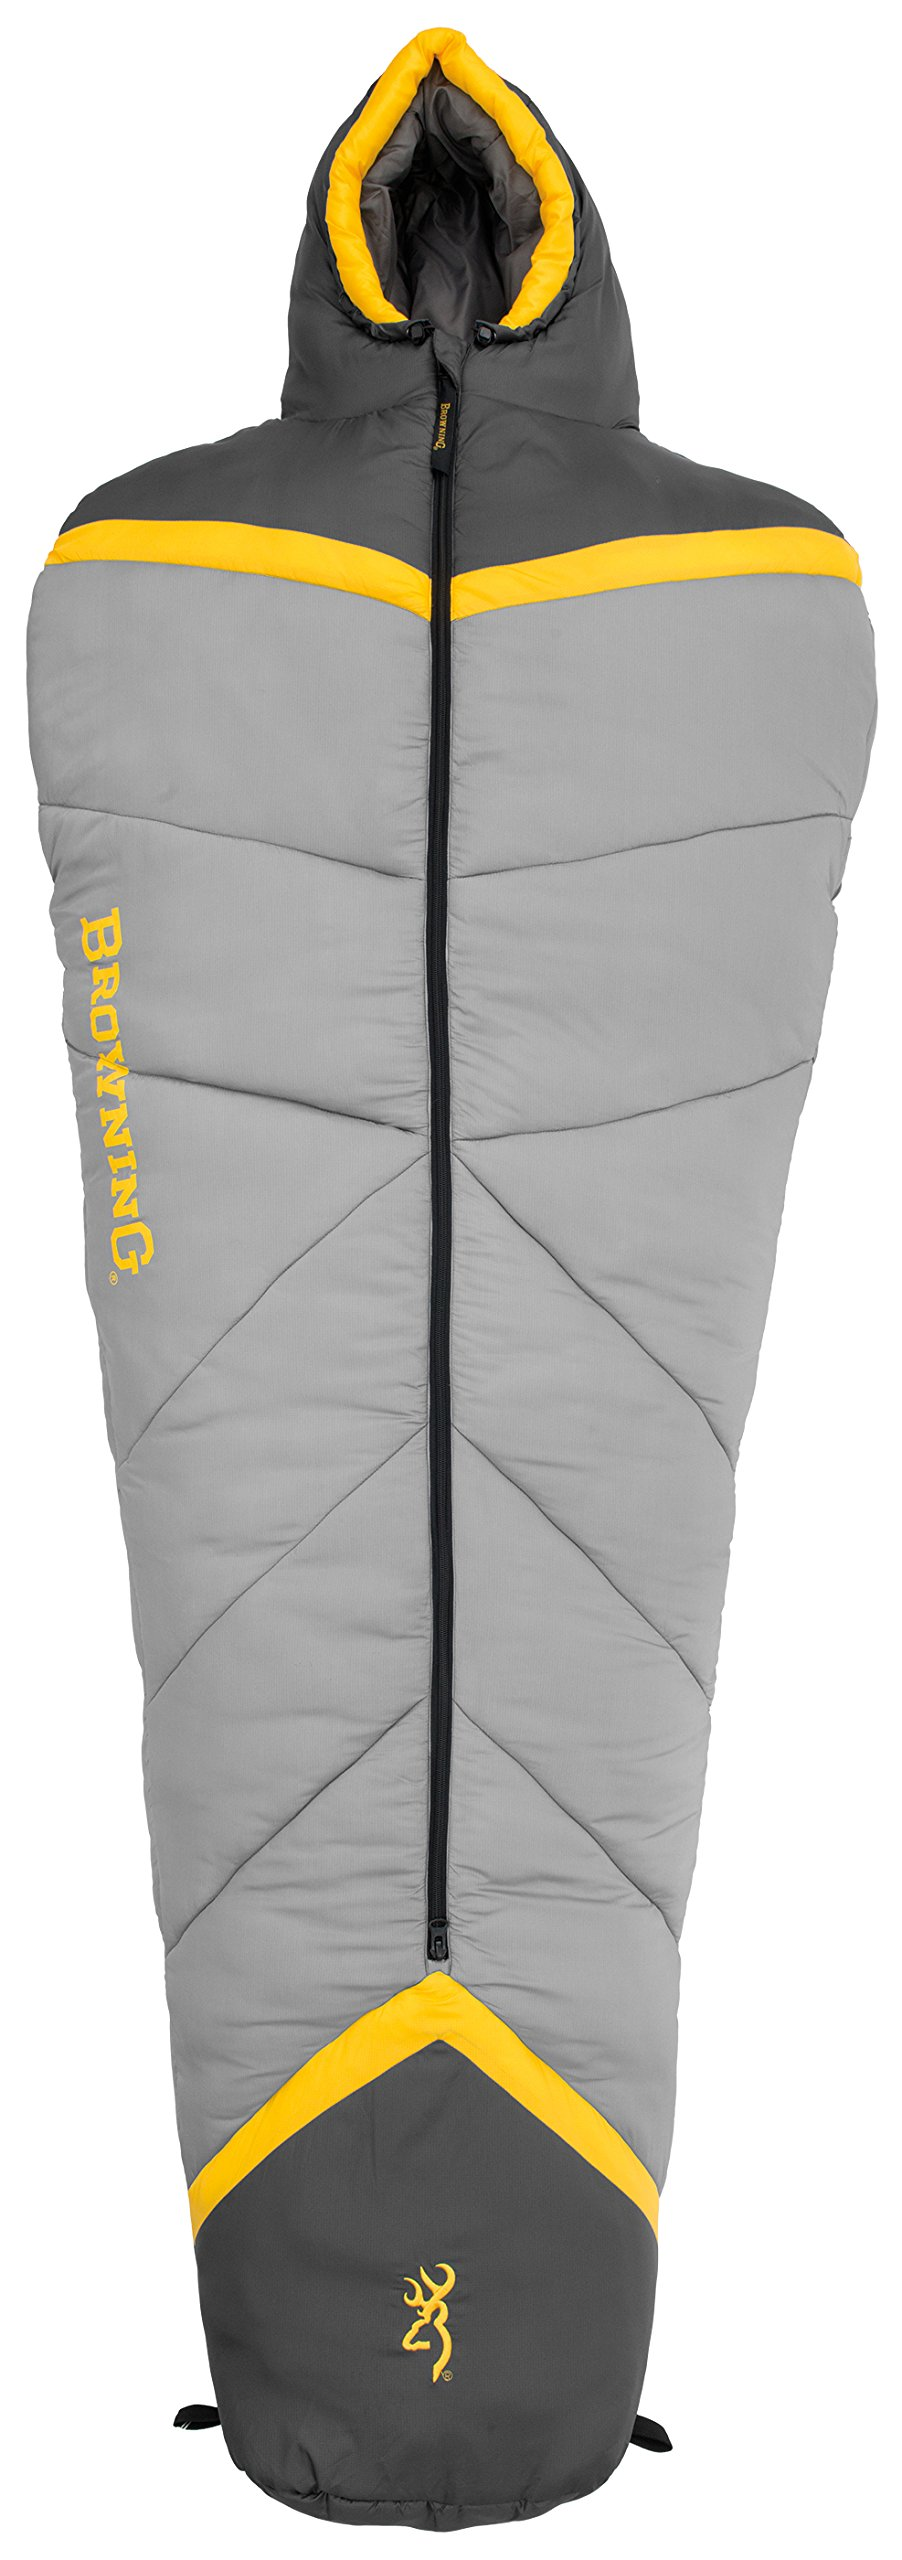 Browning Camping Refuge -10 Degree Mummy Sleeping Bag by Browning Camping